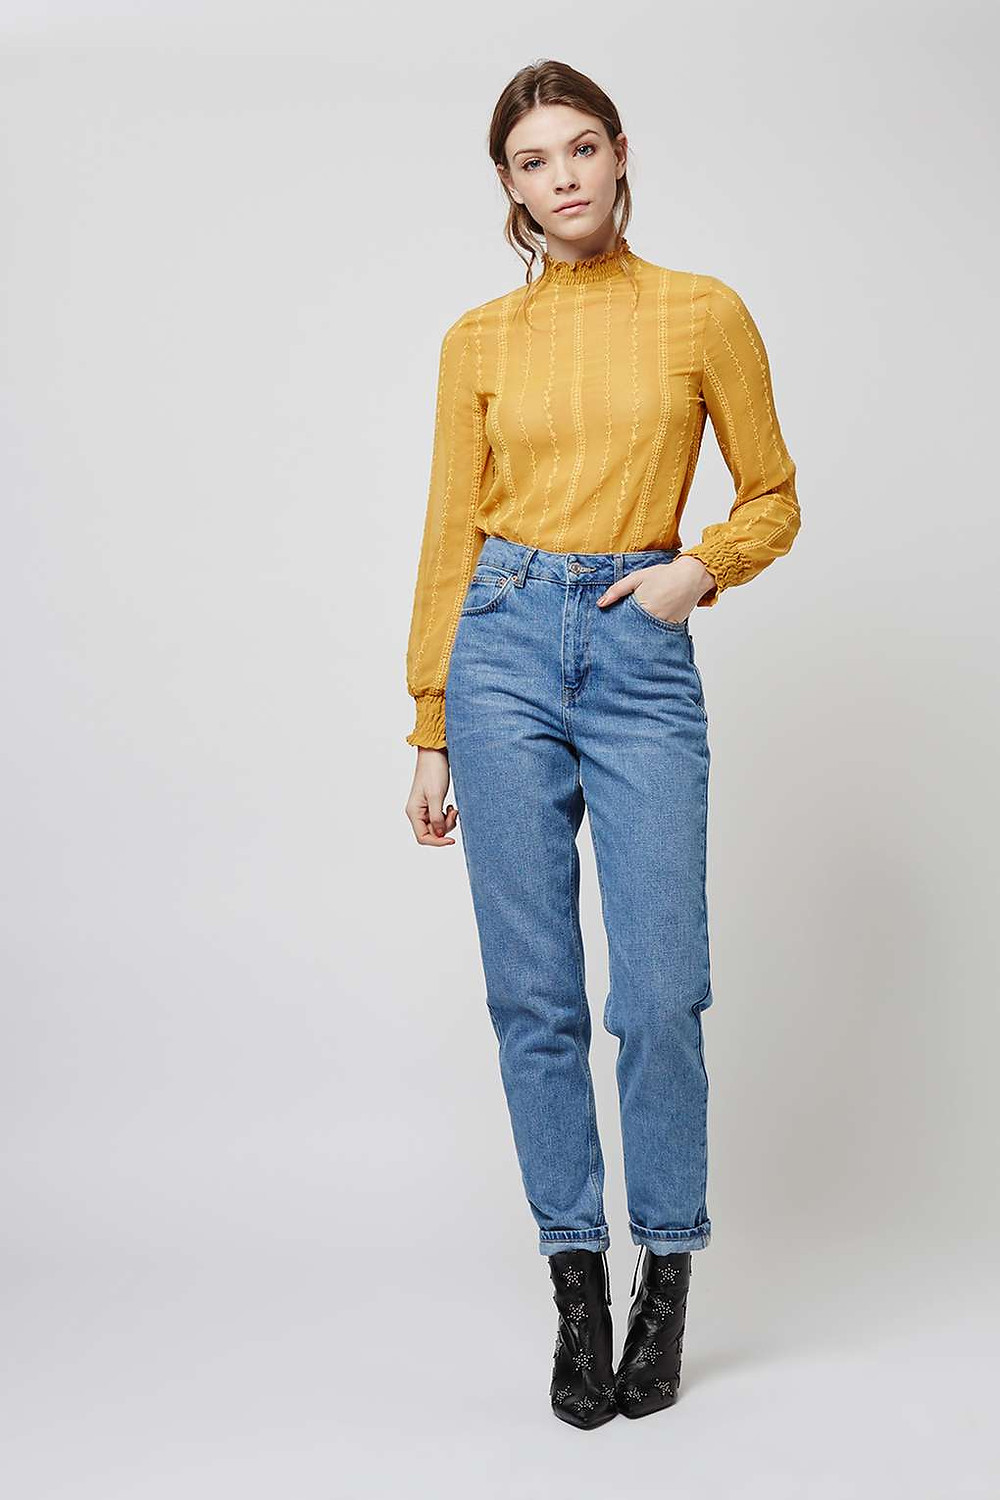 Topshop high neck blouse $75